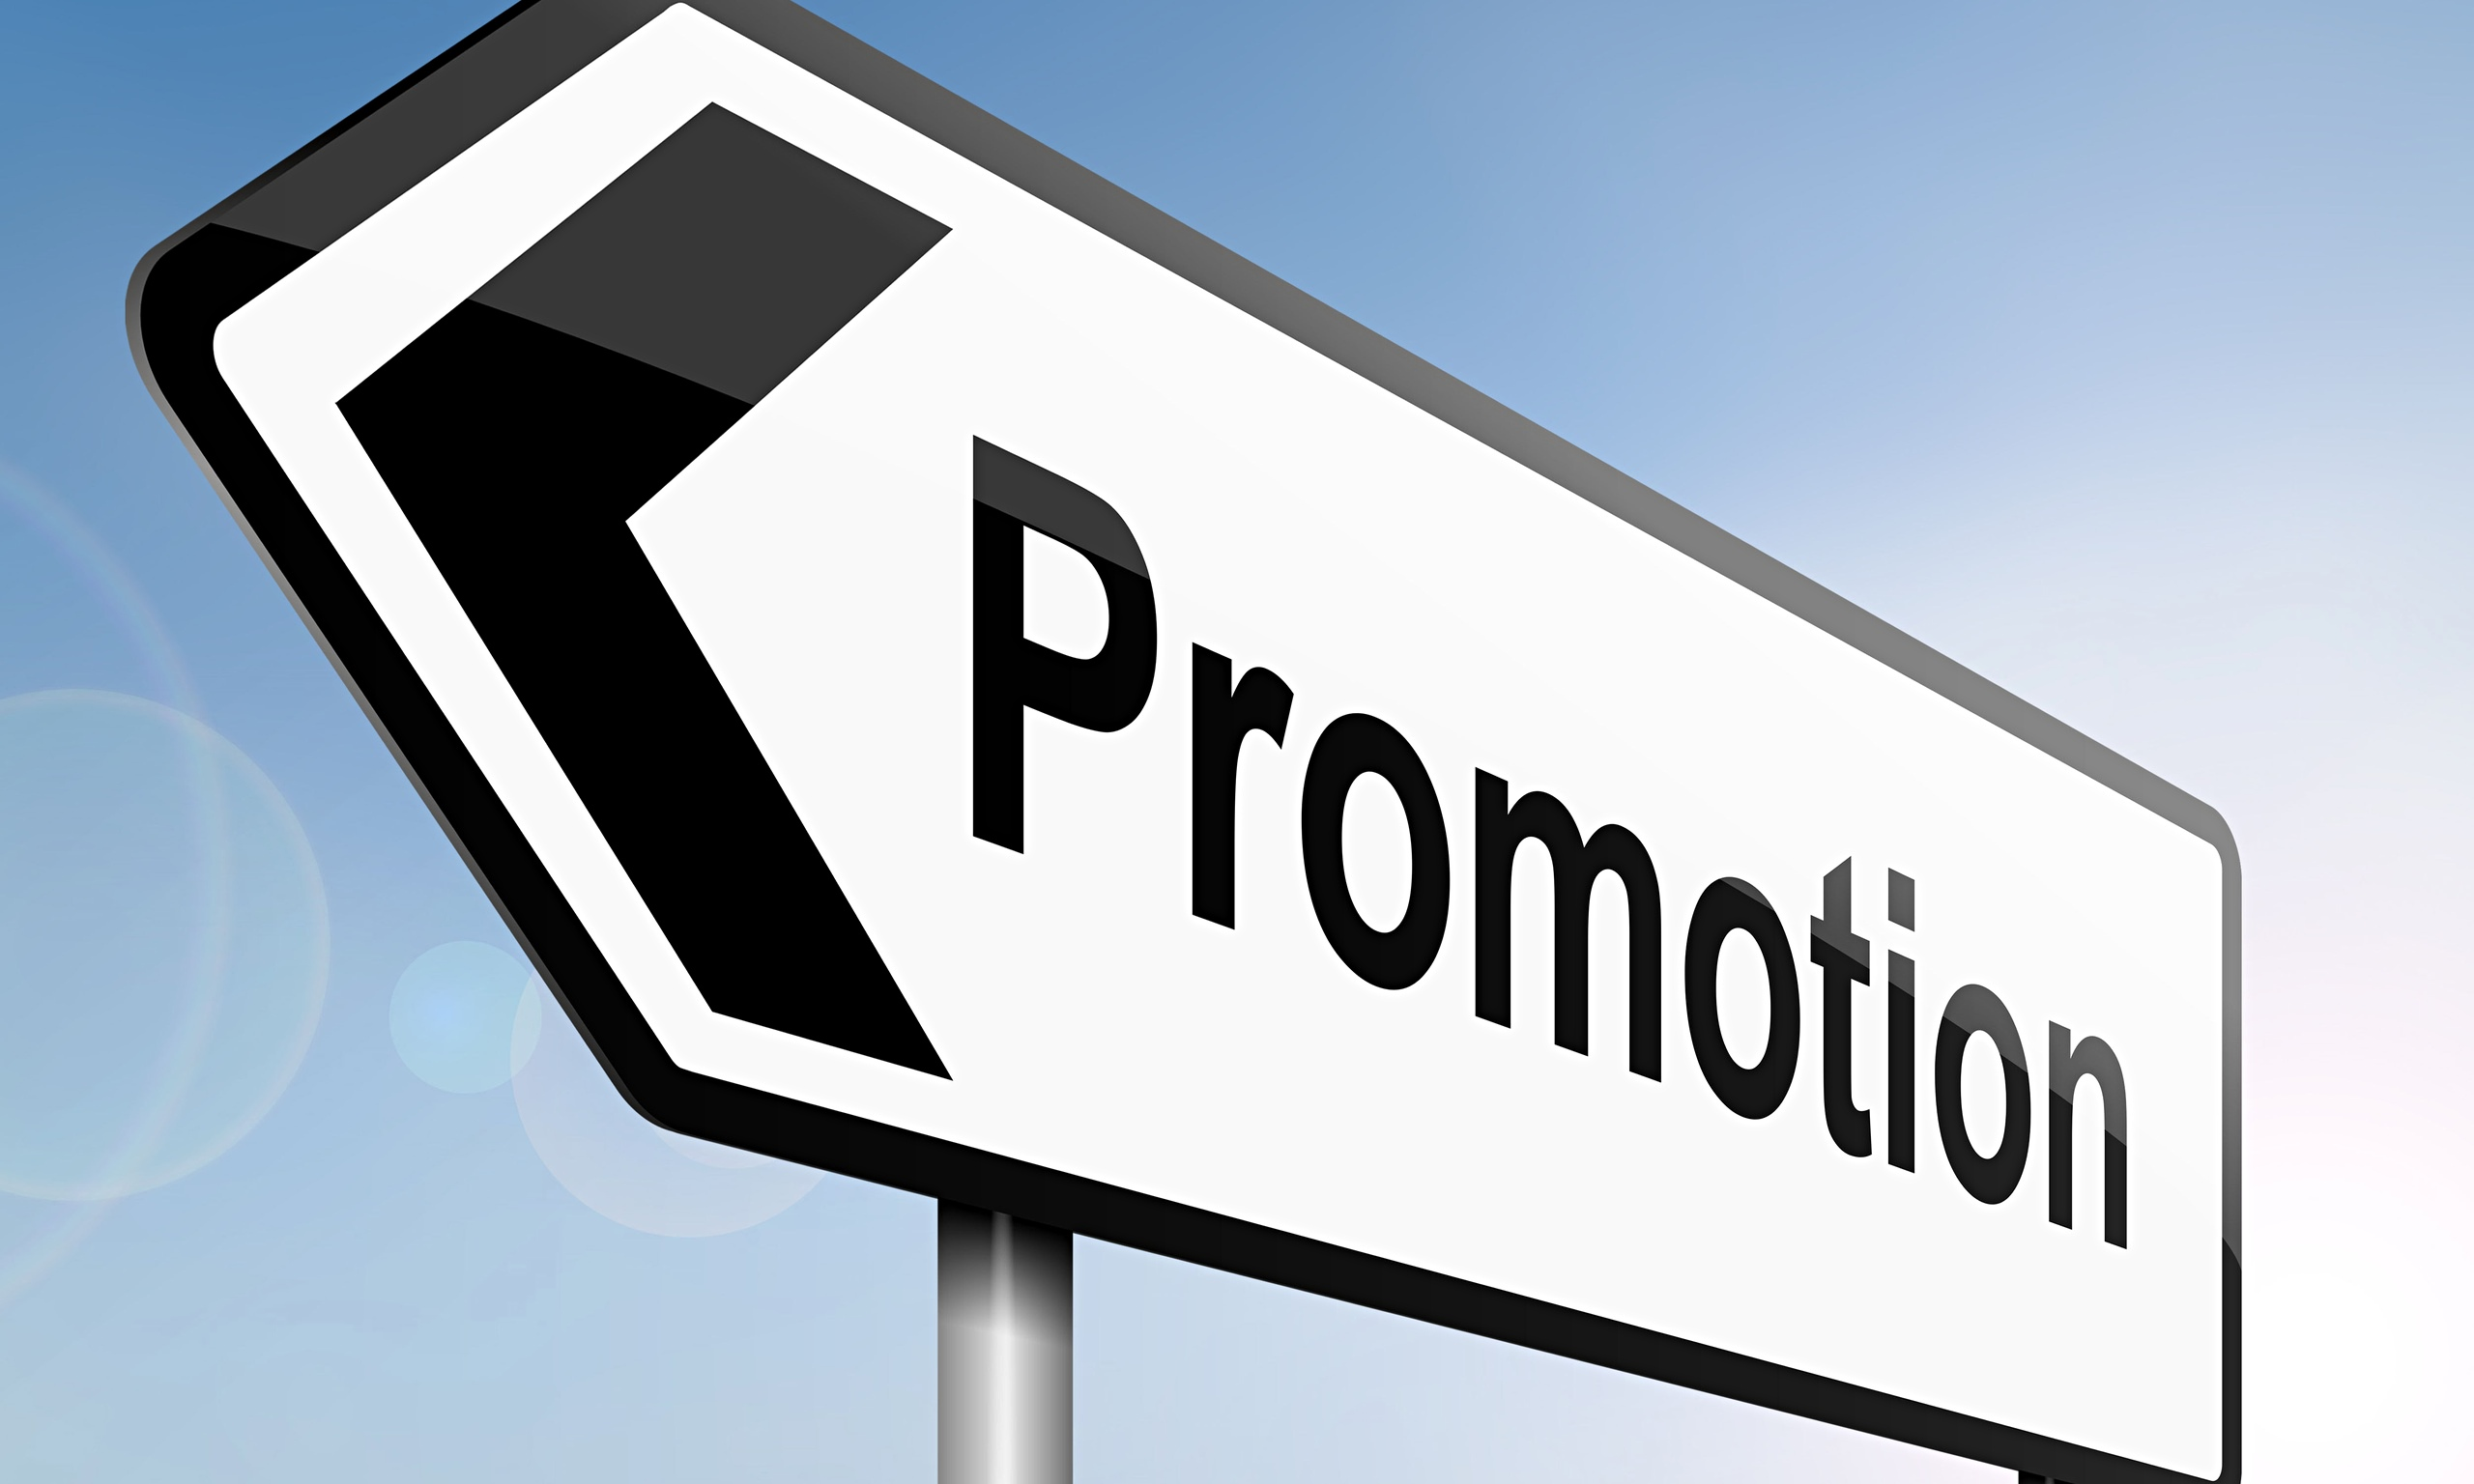 Use Promotional Objects at Commerce Reveals to Promote Your Enterprise